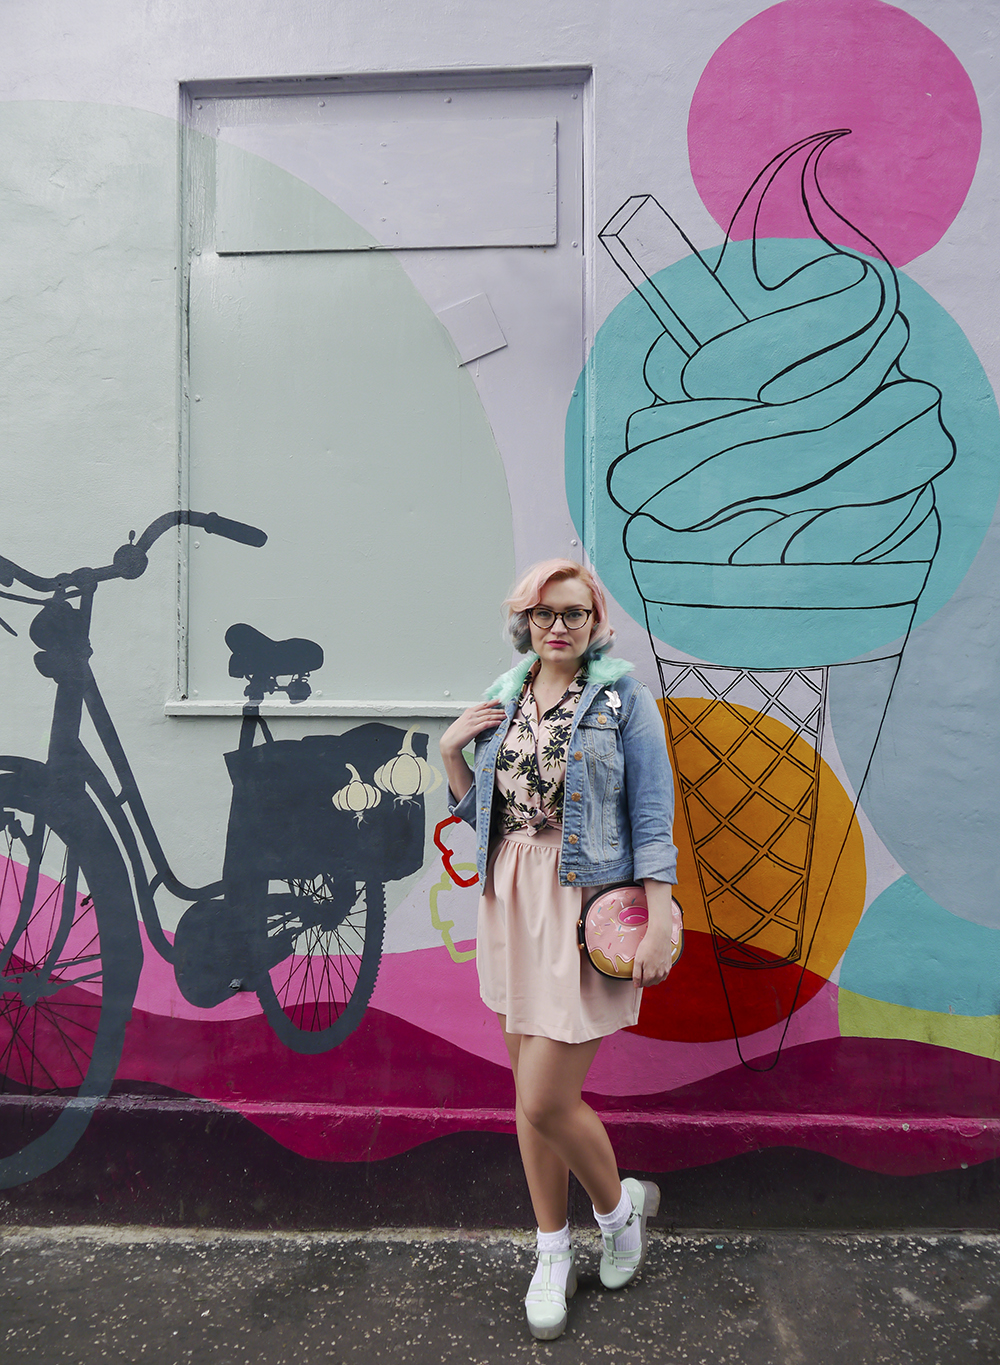 outfit round up, 2016 blogger outfit, blogger style, wardrobe conversations, Scottish blogger, UK style blogger, Edinburgh blogger, diner style, 50s diner outfit, pink and blue hair, slushie hair, unicorn hair, Roller Shakes, blog birthday, donut bag, novelty bag